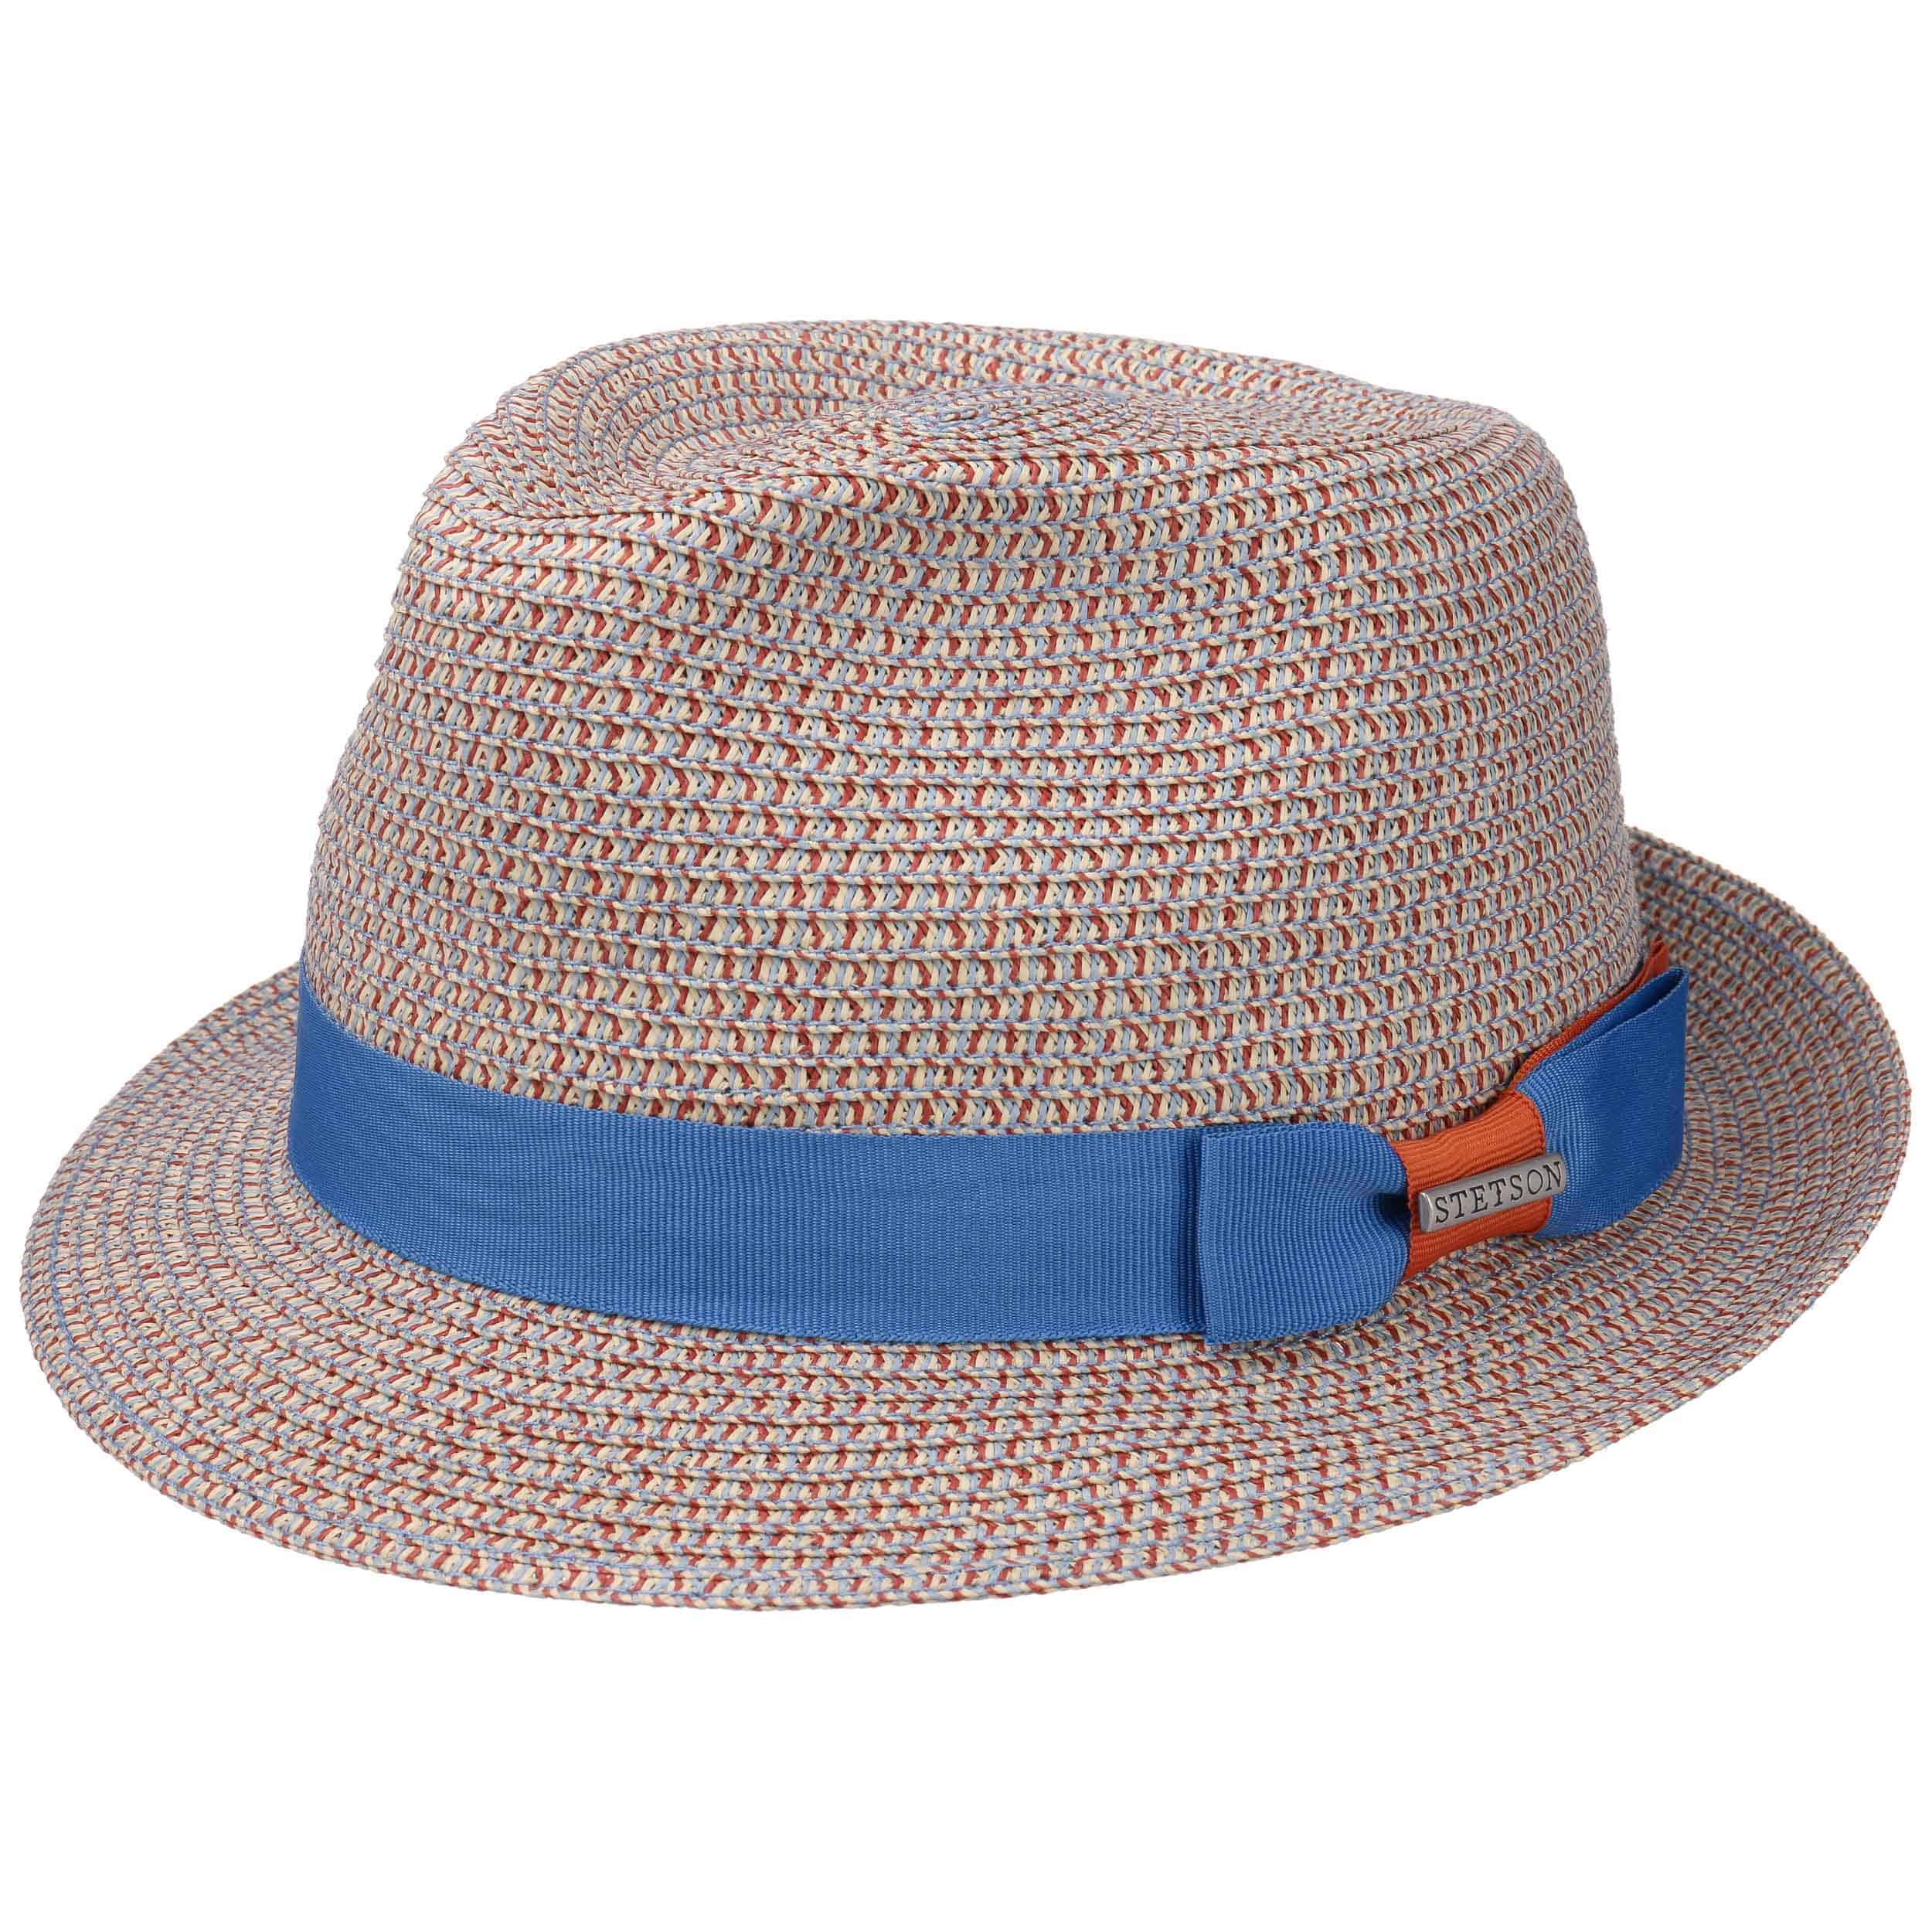 83232b6a2c9 ... Contrast Colour Toyo Trilby Hat by Stetson - blue-green 4 ...